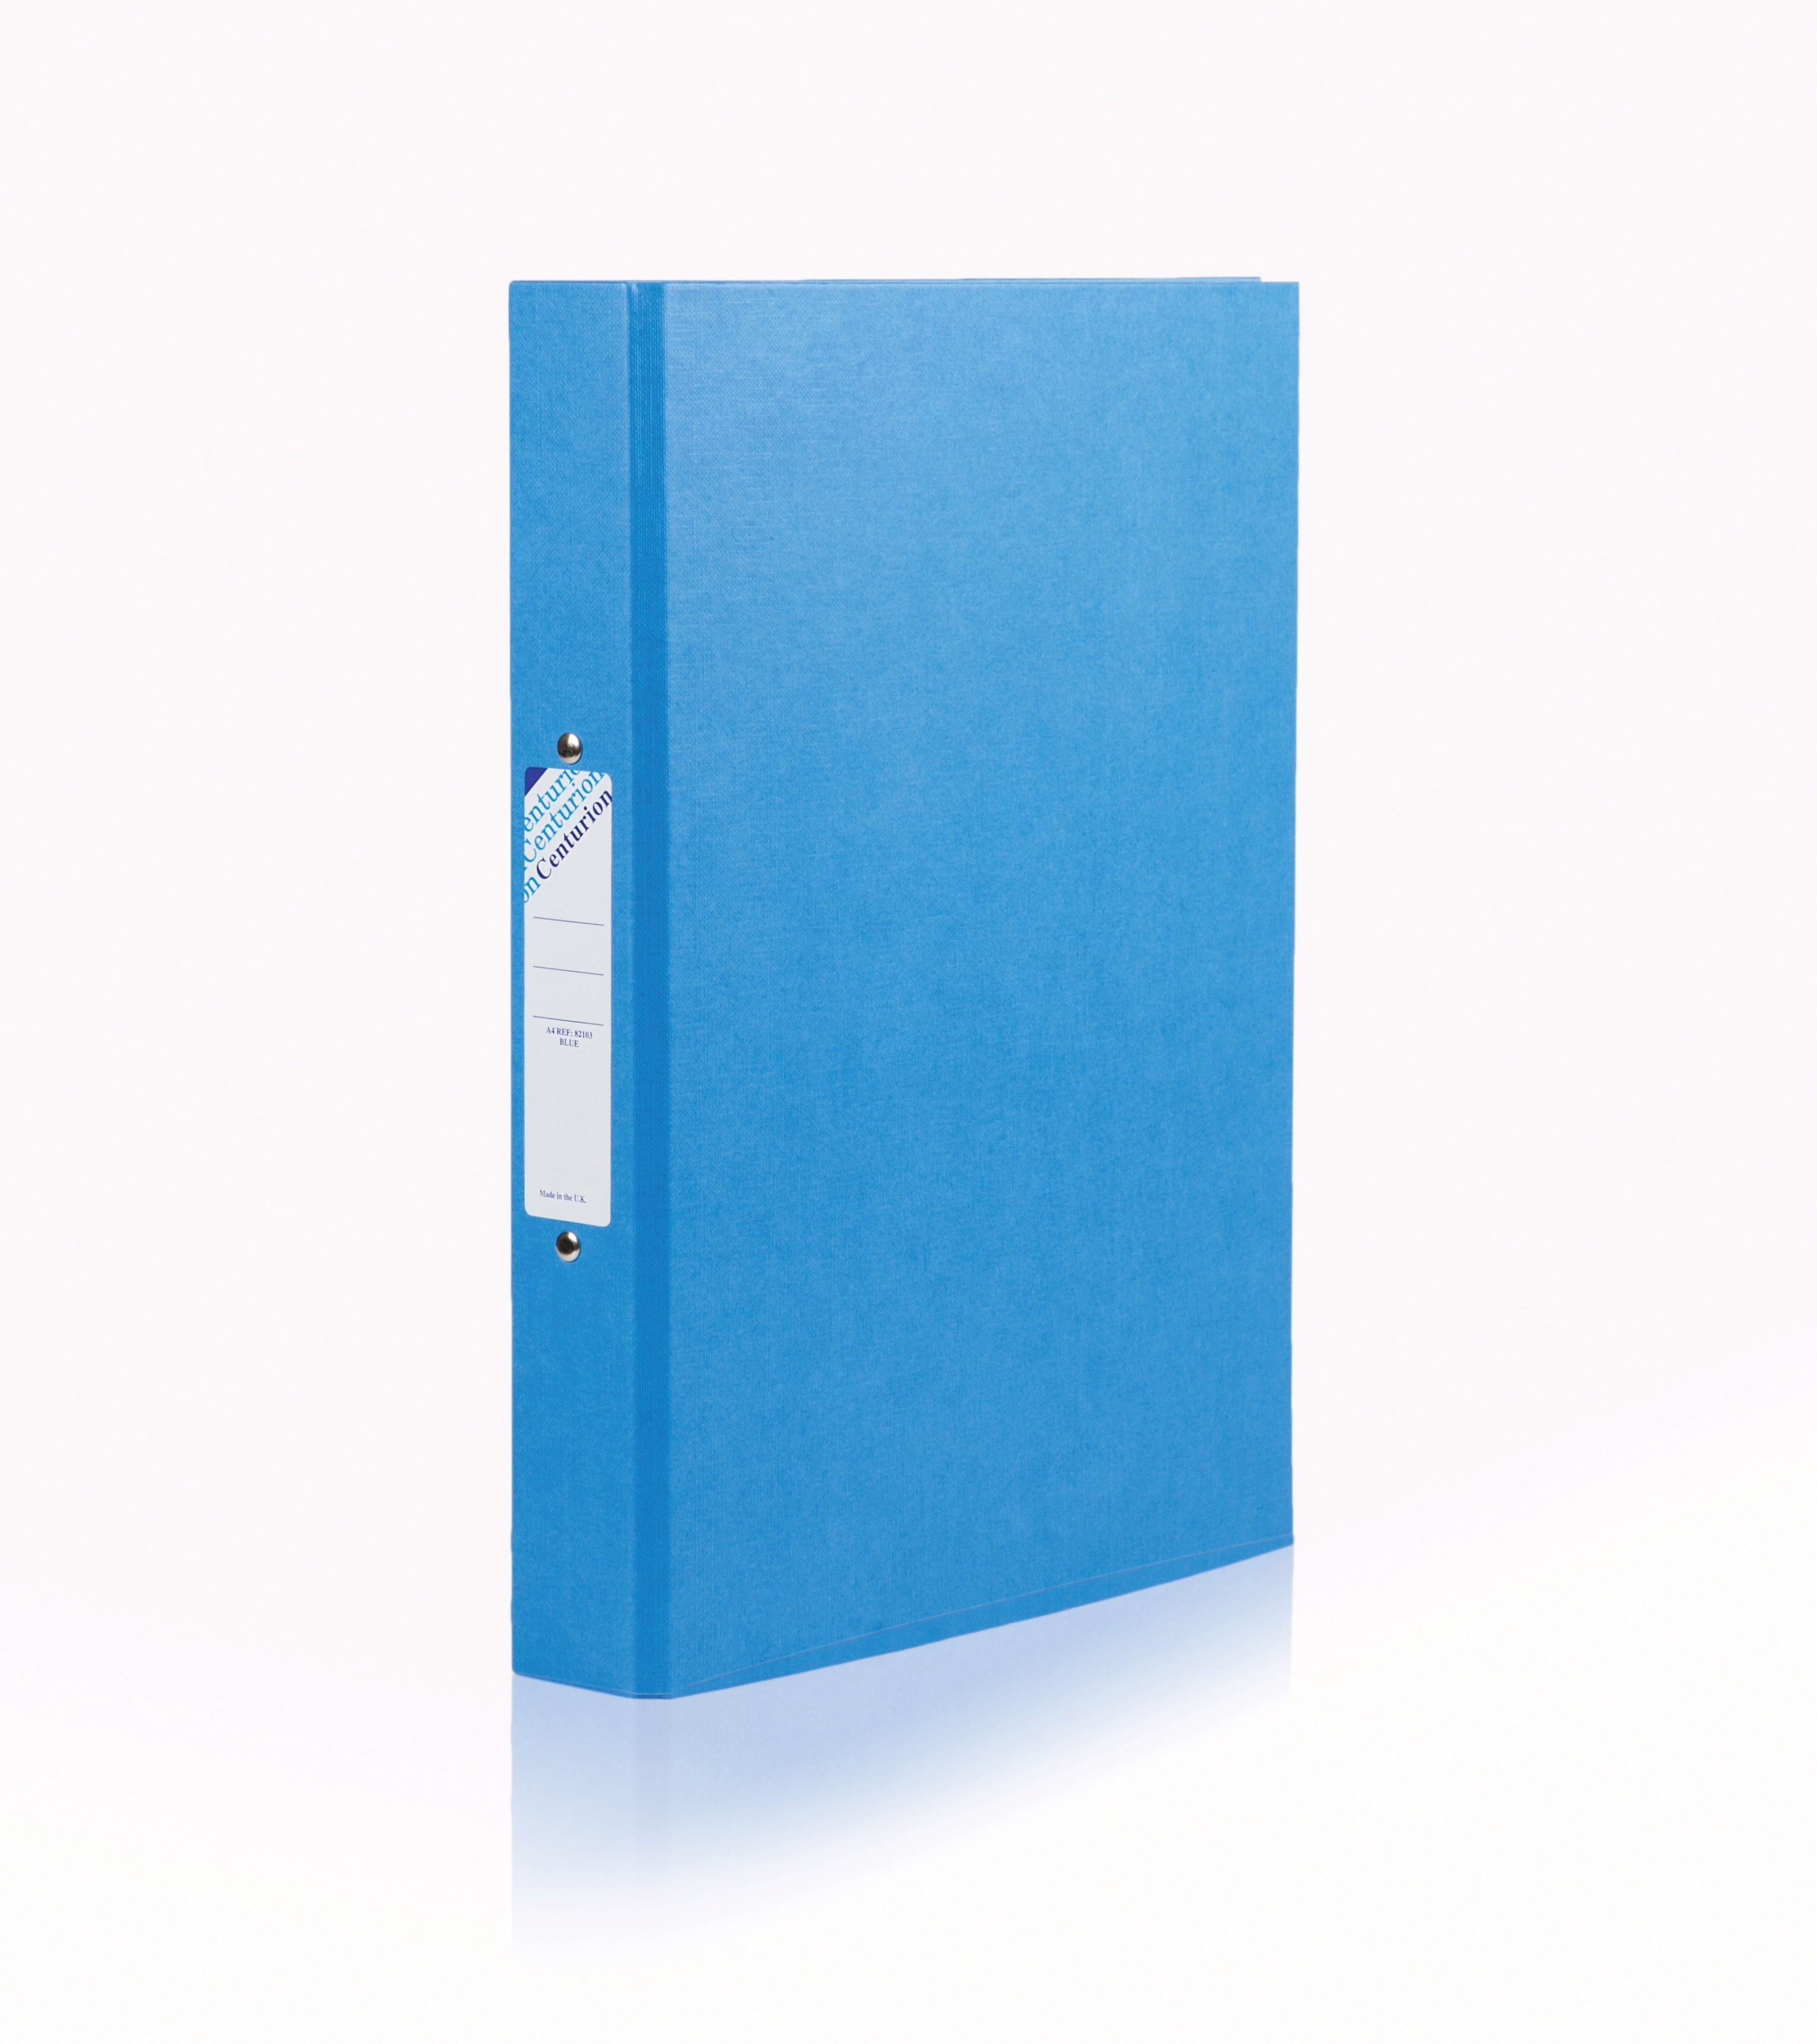 Centurion Classic Ring Binder 2-OR 25mm A4 Blue PK10